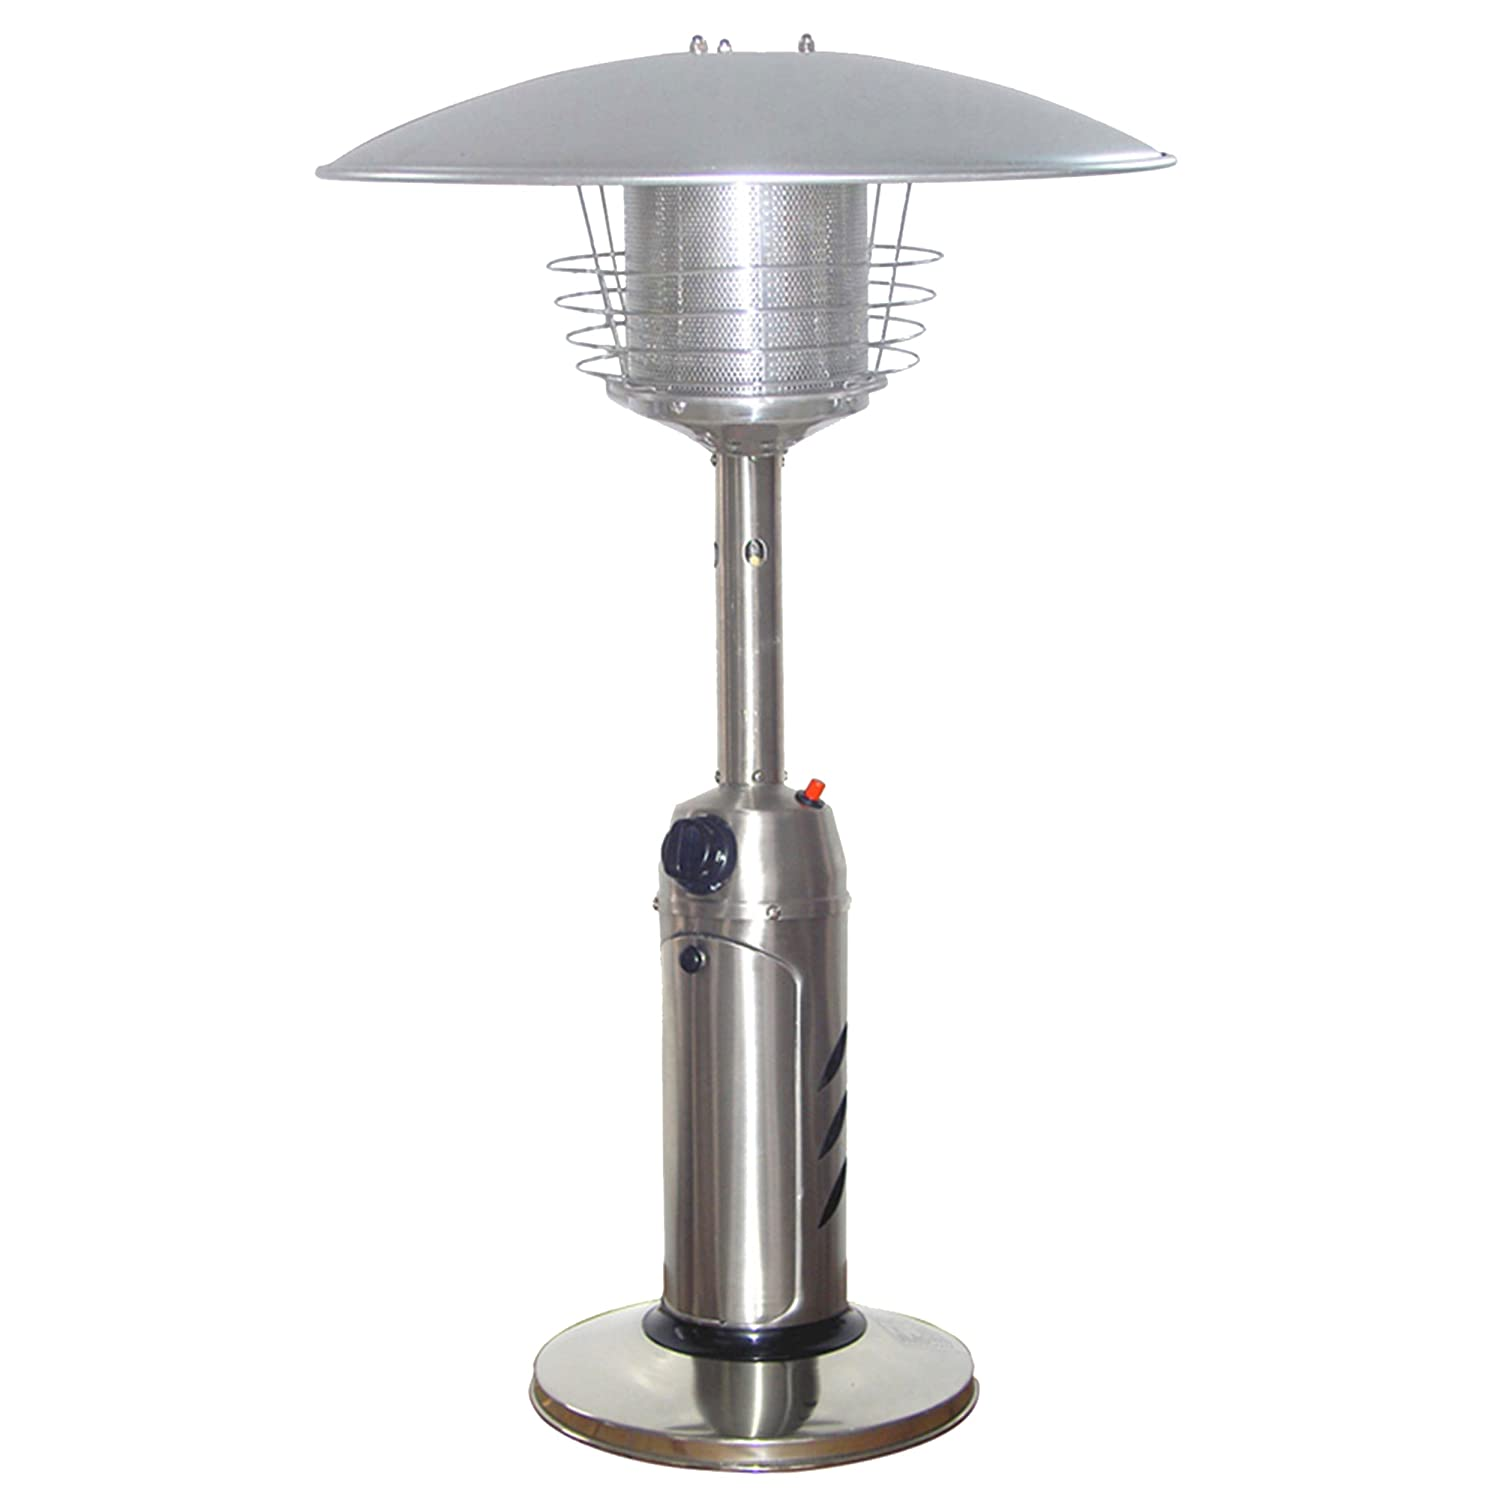 Perfect AZ Patio Heaters HLDS032 B Portable Table Top Stainless Steel Patio Heater,  Stainless Finish